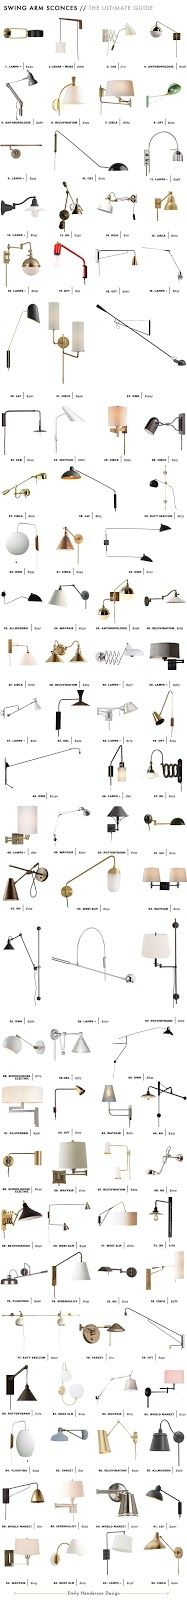 Emily Henderson Desing Swing Arm Sconce Roundup